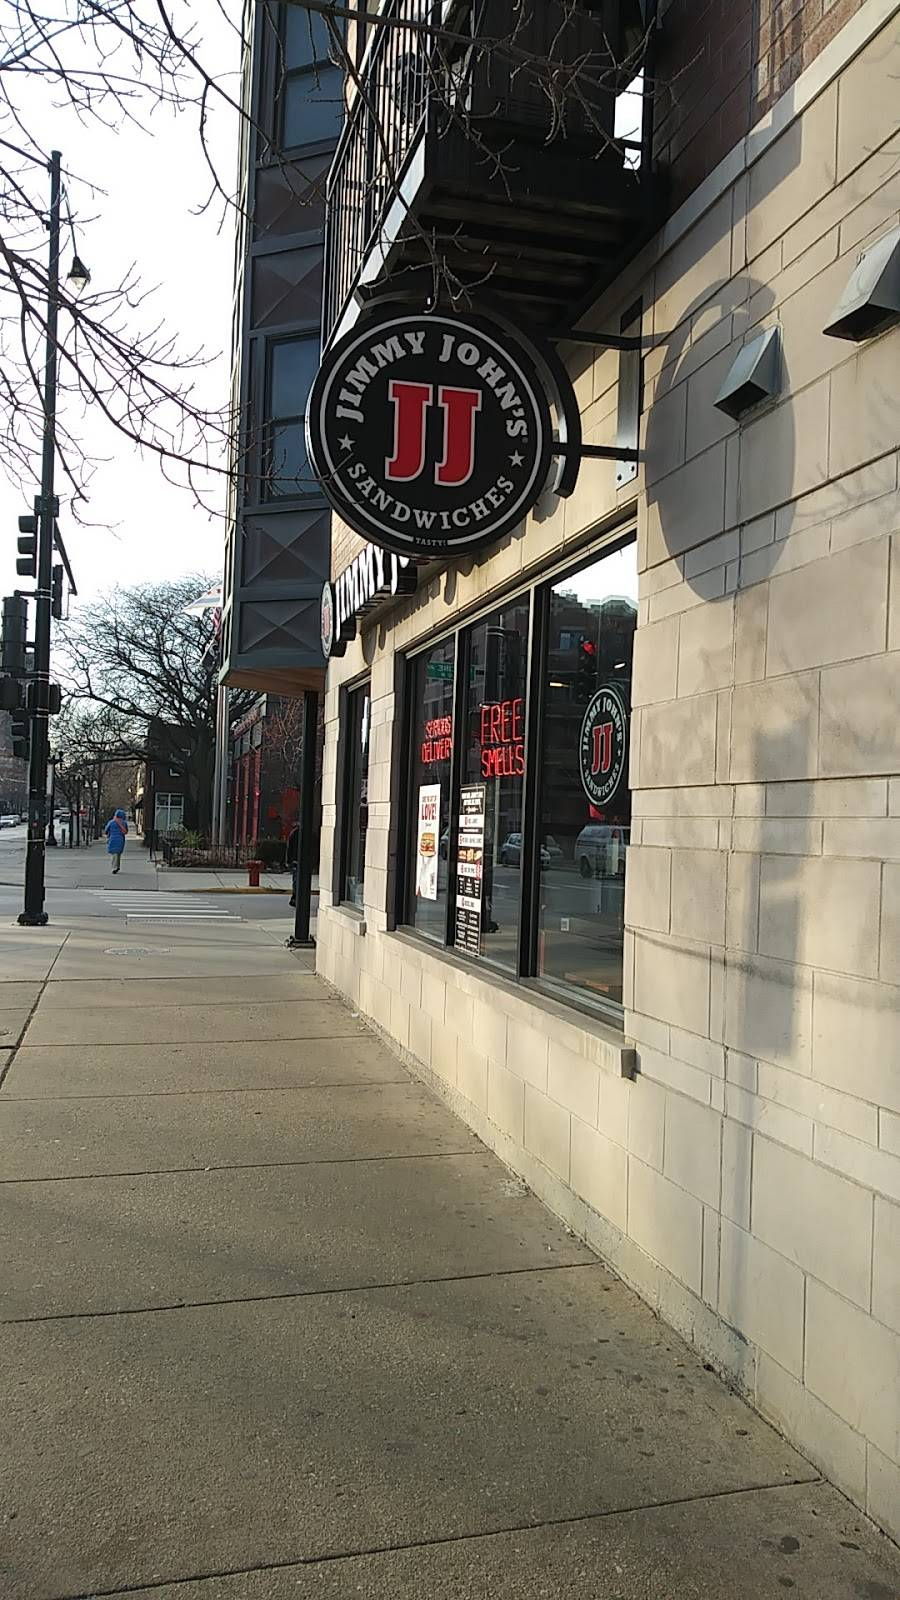 Jimmy Johns | meal delivery | 1148 W Wilson Ave, Chicago, IL 60640, USA | 7739072200 OR +1 773-907-2200